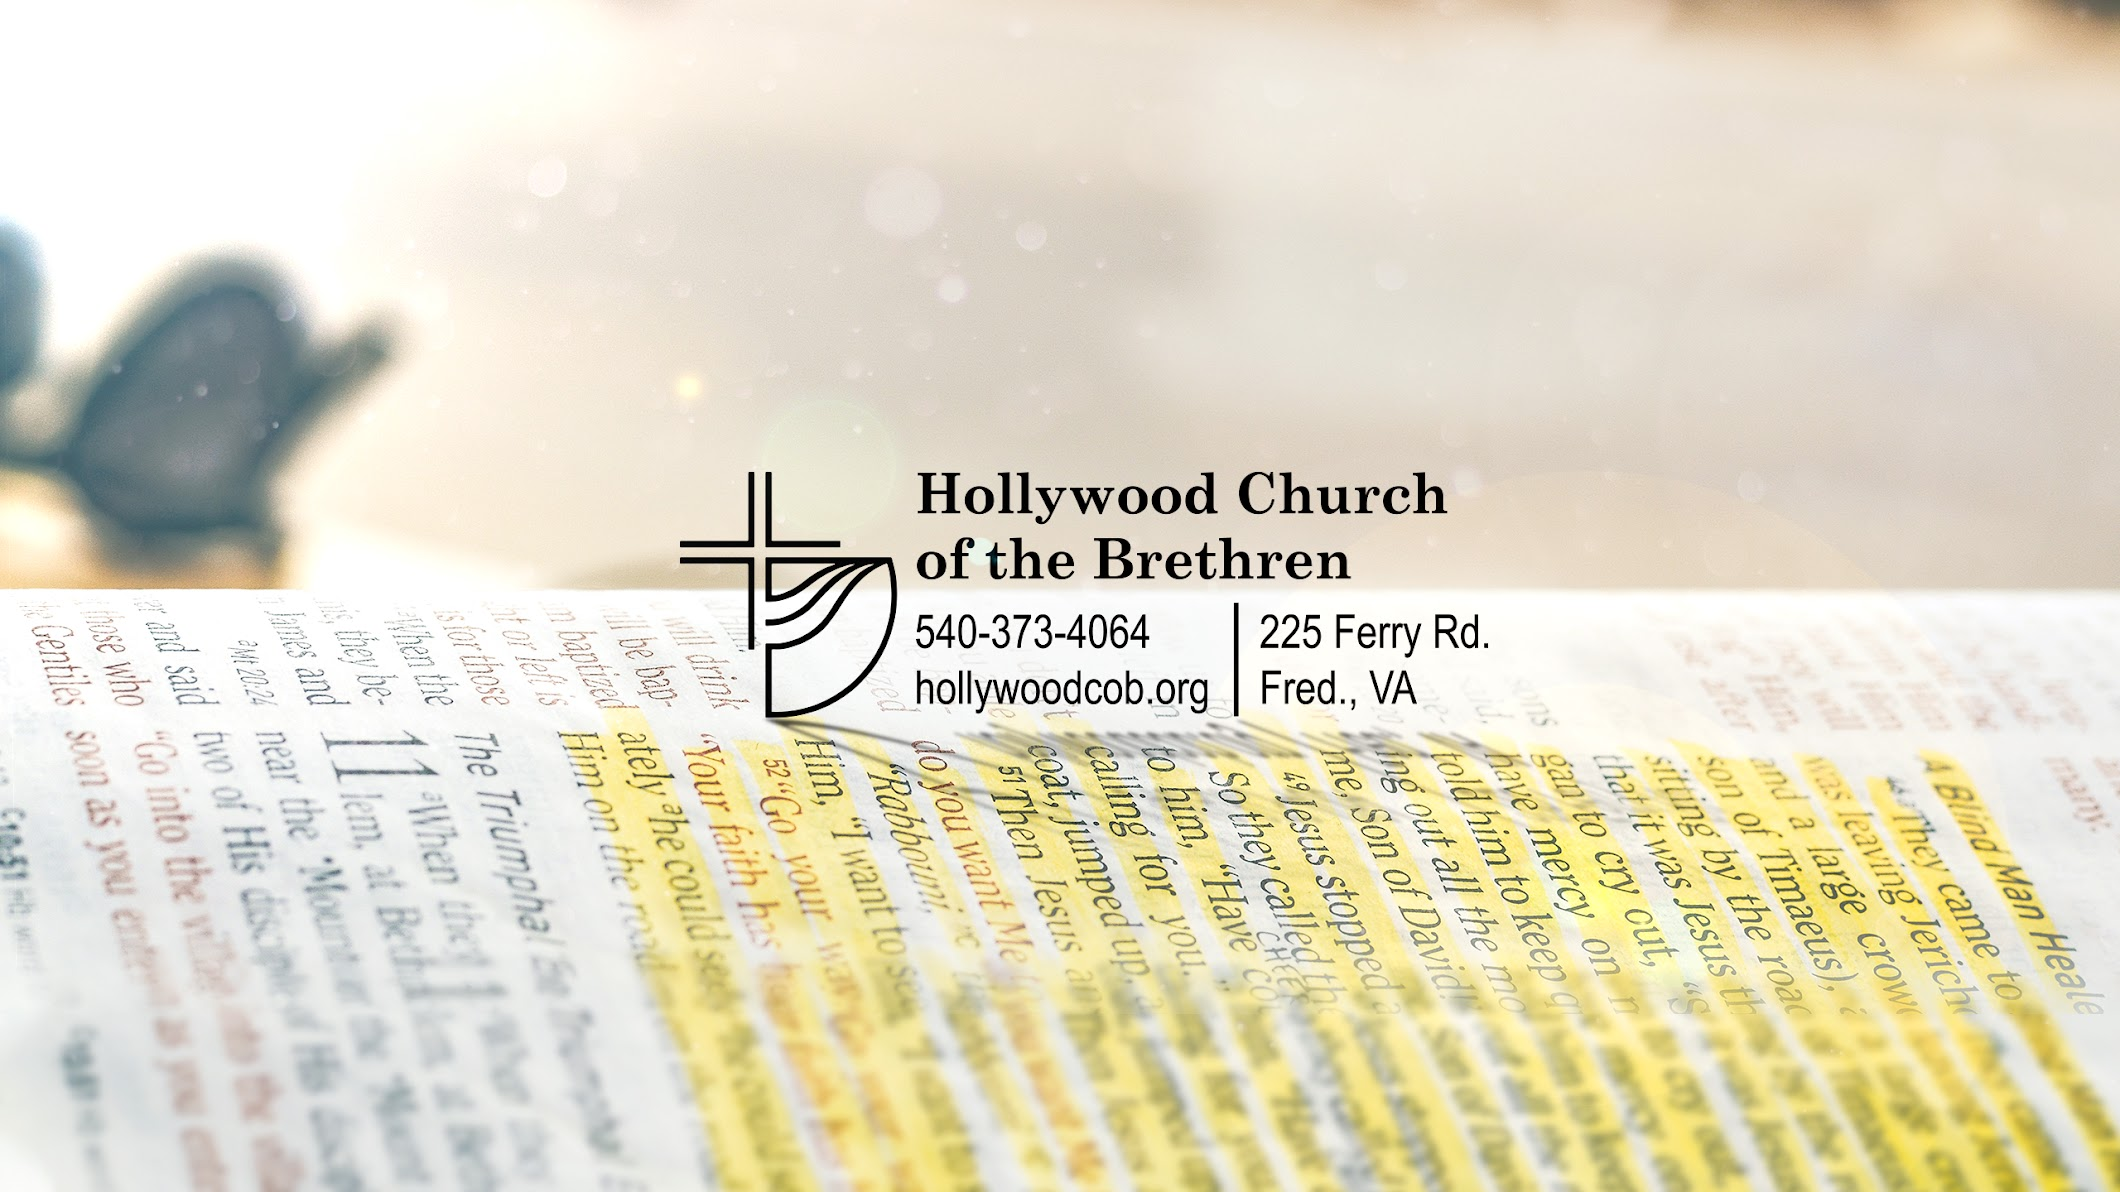 Hollywood Church Of The Brethren